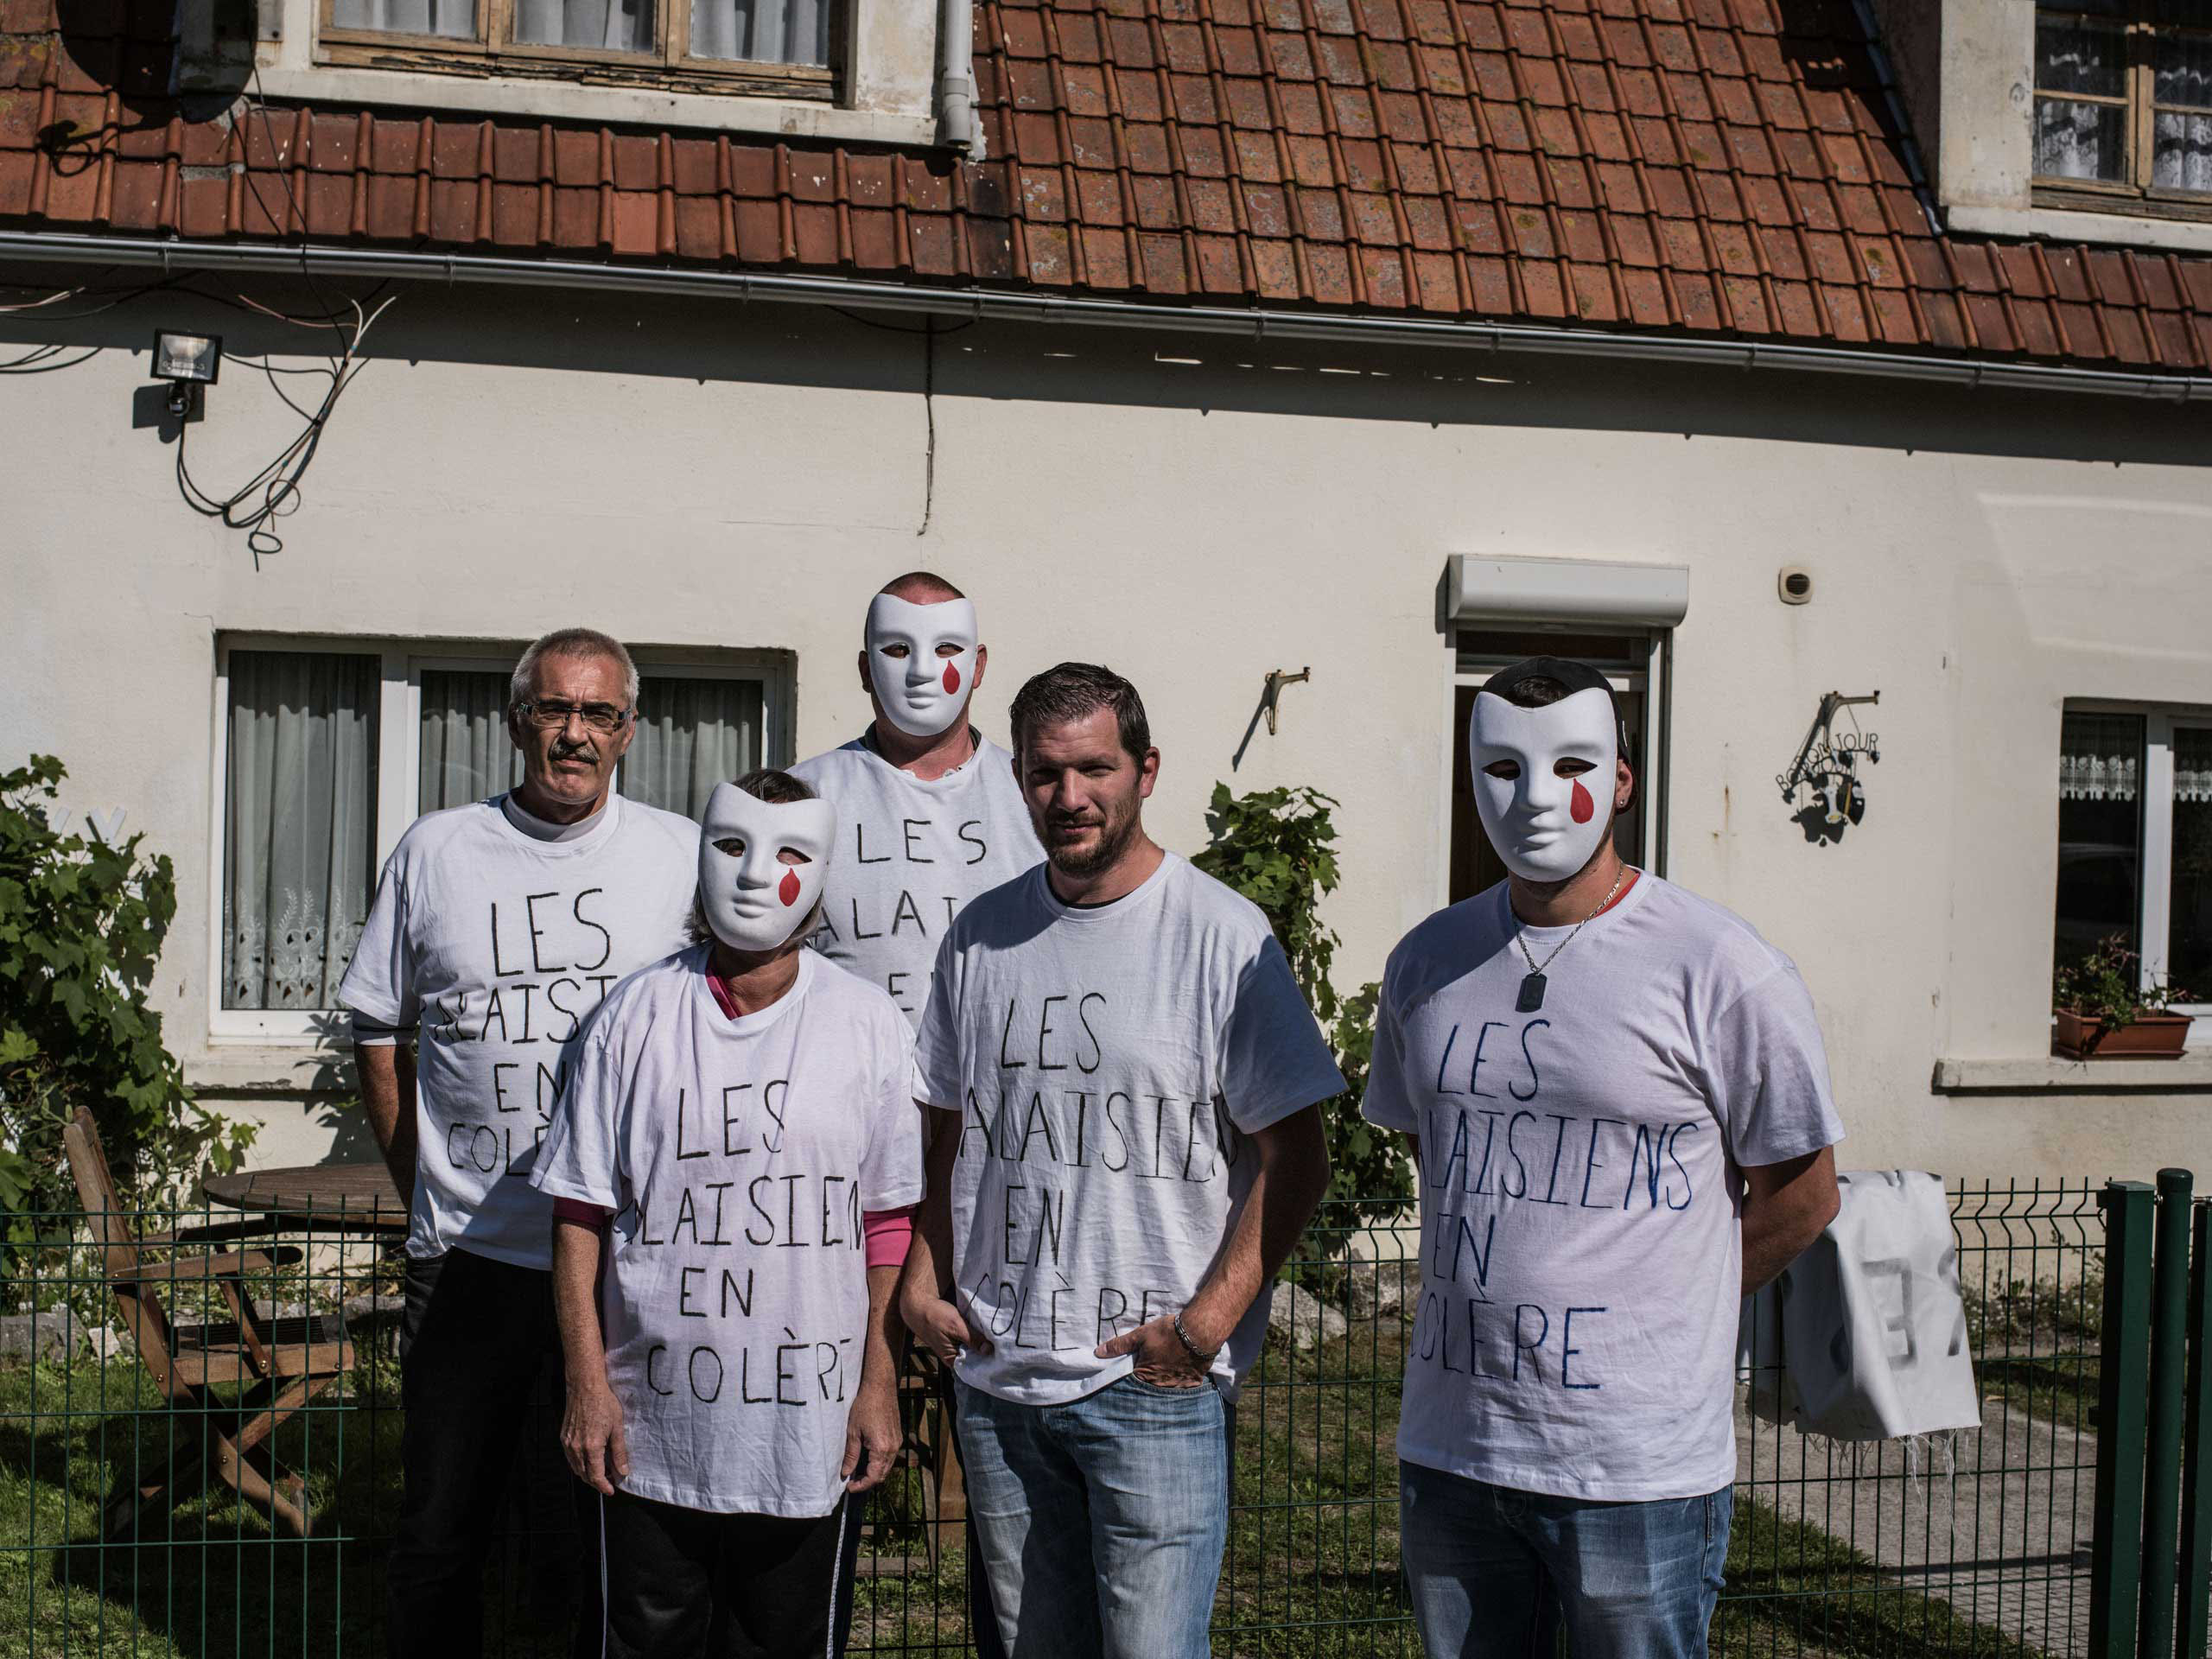 A group of neighbors wear tee-shirts proclaiming   Angry Calaisiens,  while protesting the migrant camp known as the  jungle,  Sept. 11, 2015.